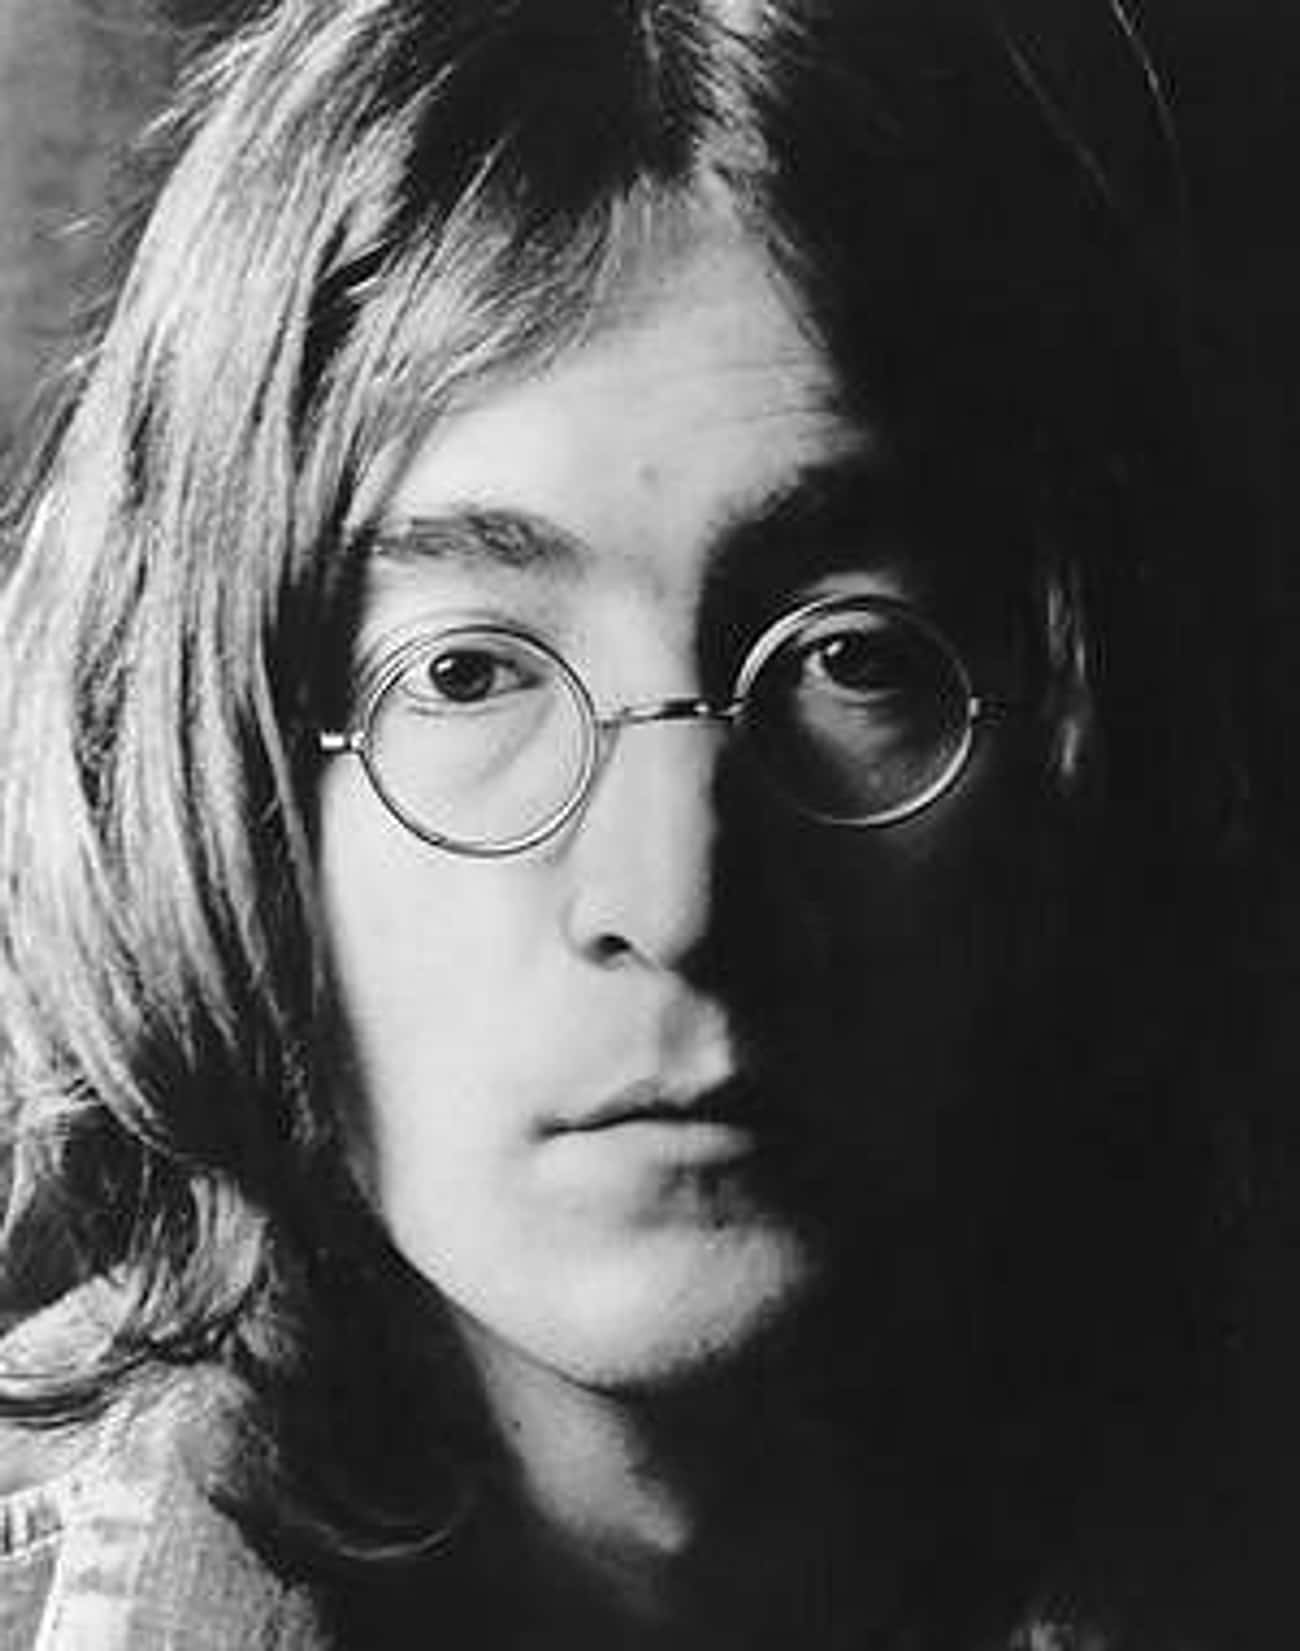 John Lennon: Corn Flakes With  is listed (or ranked) 4 on the list Favorite Foods Of Legendary Musicians We Lost Too Soon